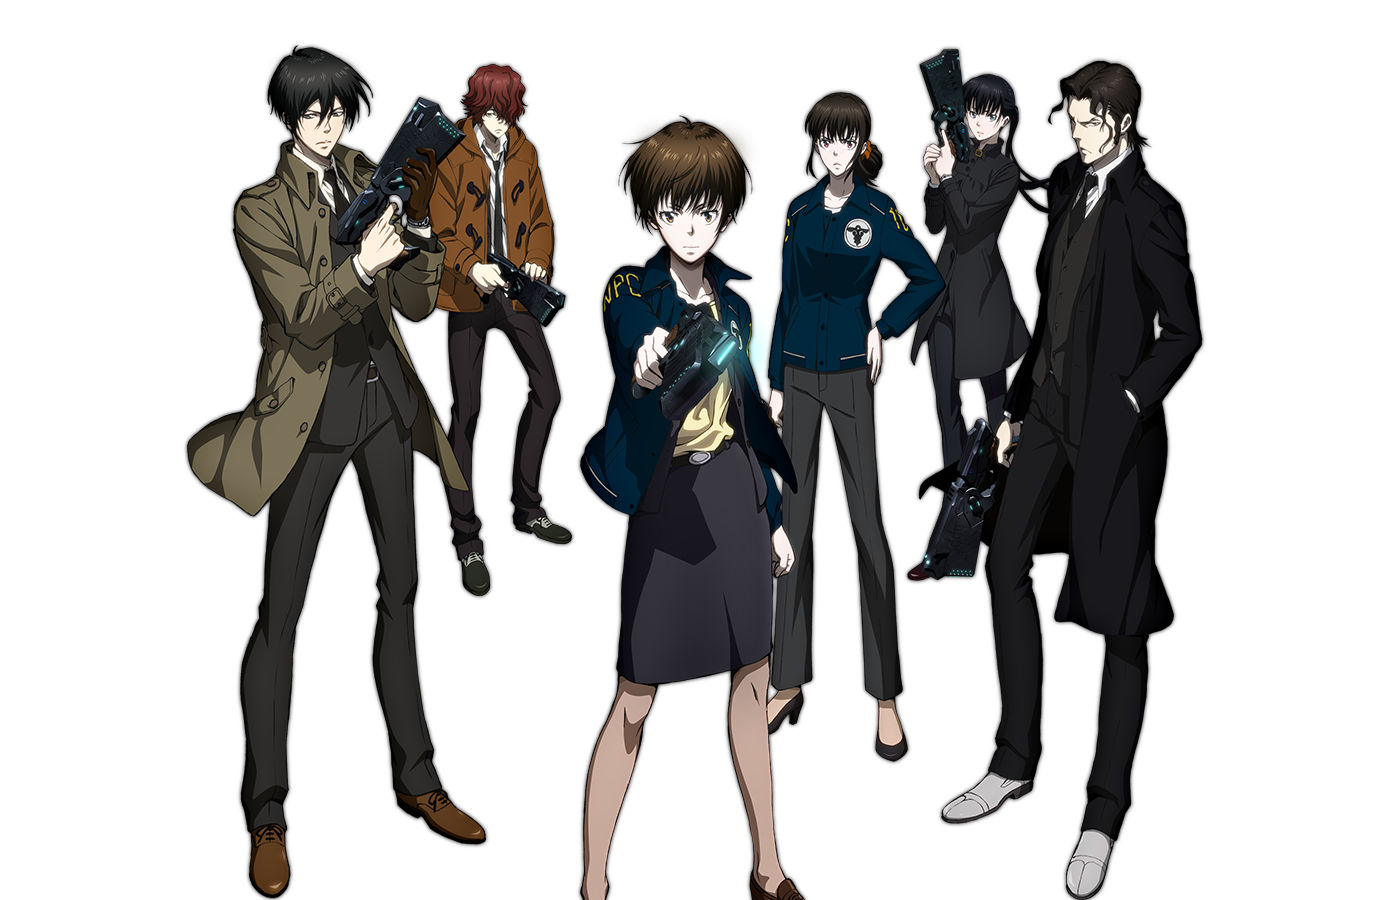 The cast of PsychoPass 2. From left to right, Ginoza, Sho